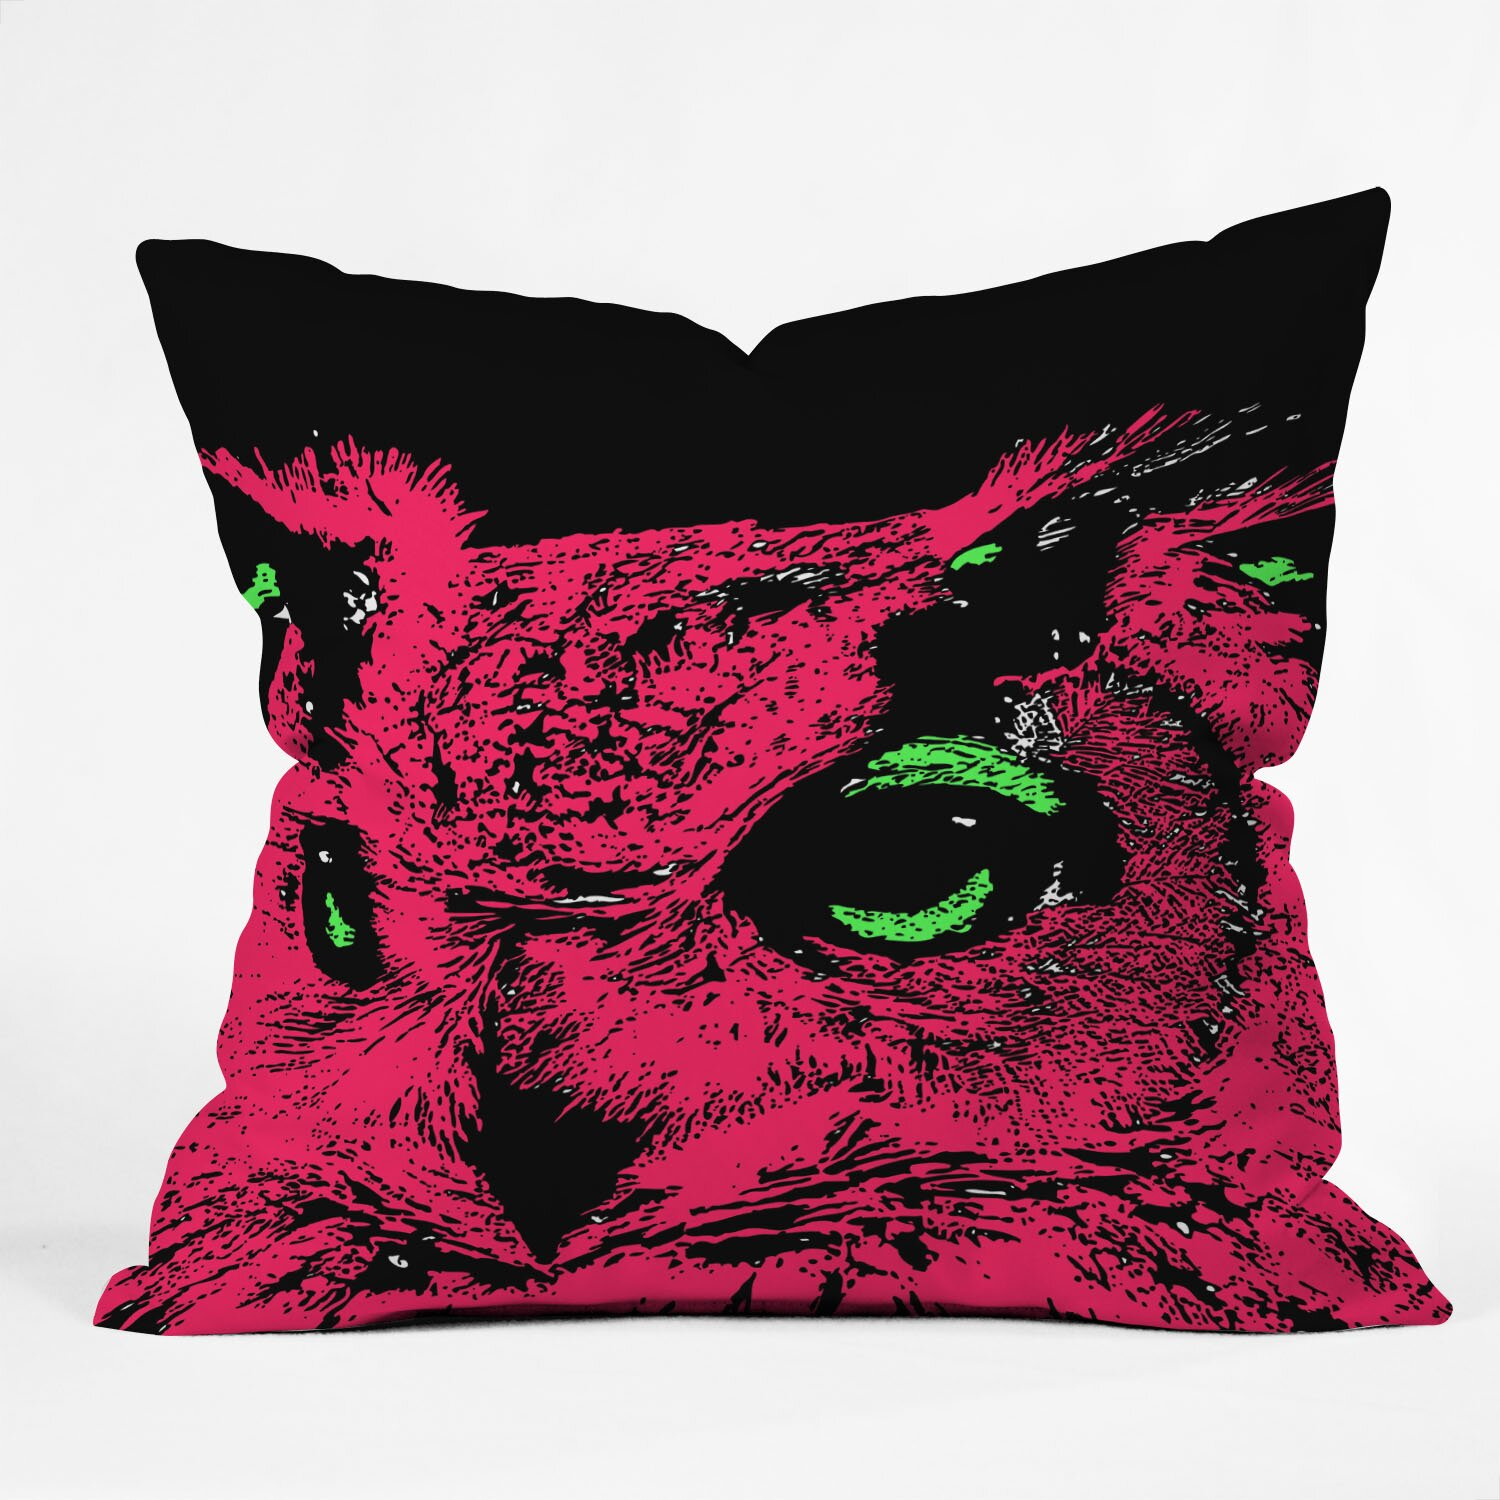 DENY Designs Romi Vega Owl Throw Pillow & Reviews Wayfair